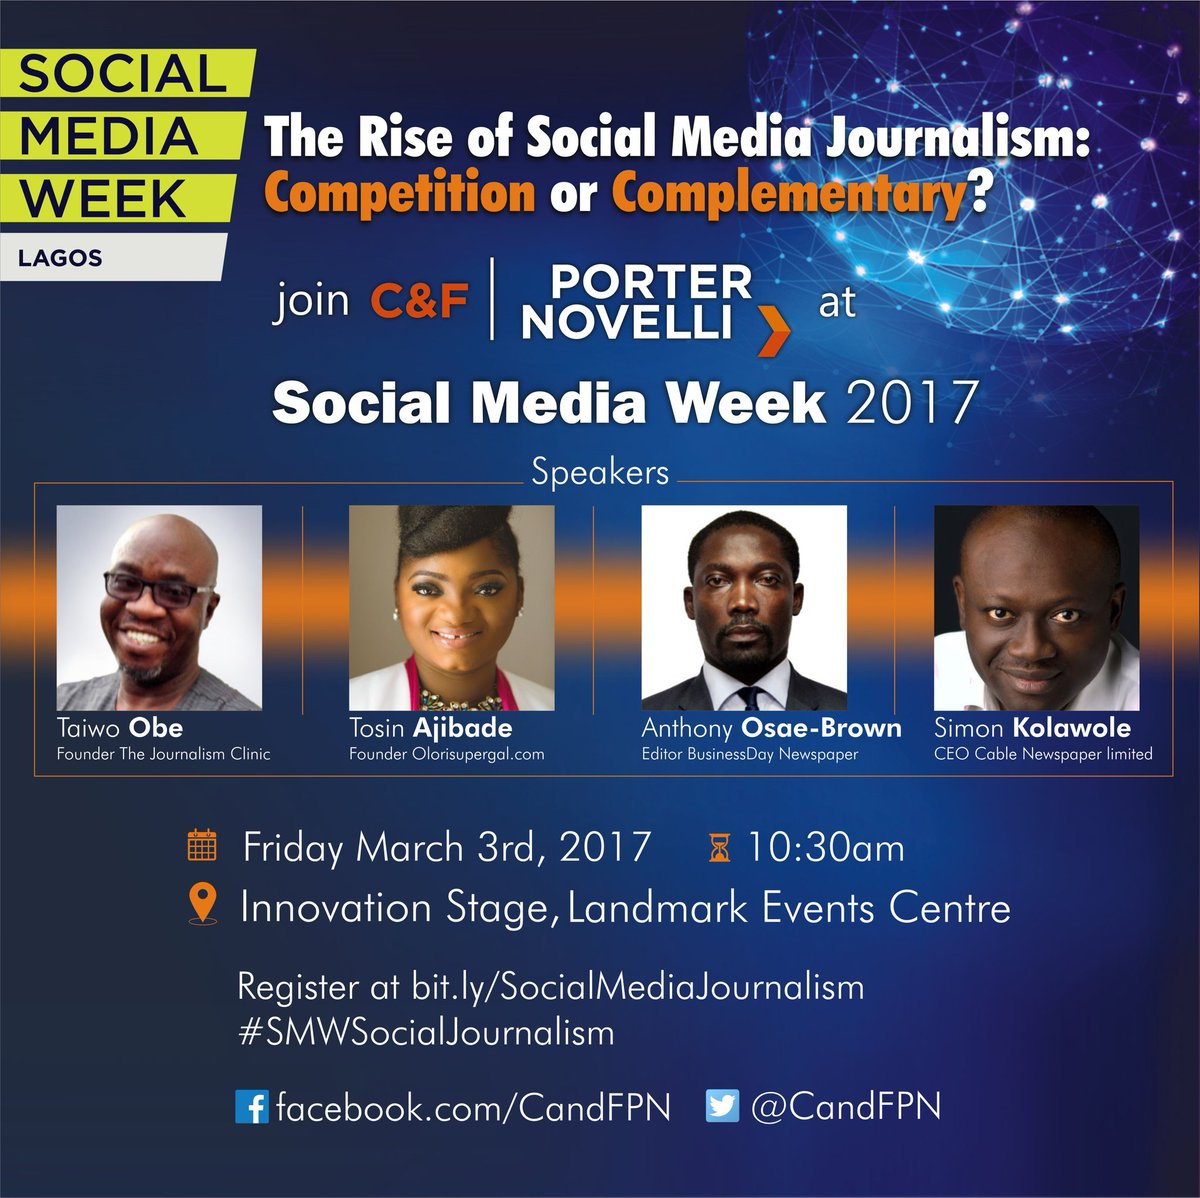 A SOCIAL MEDIA WEEK 2017 SESSION